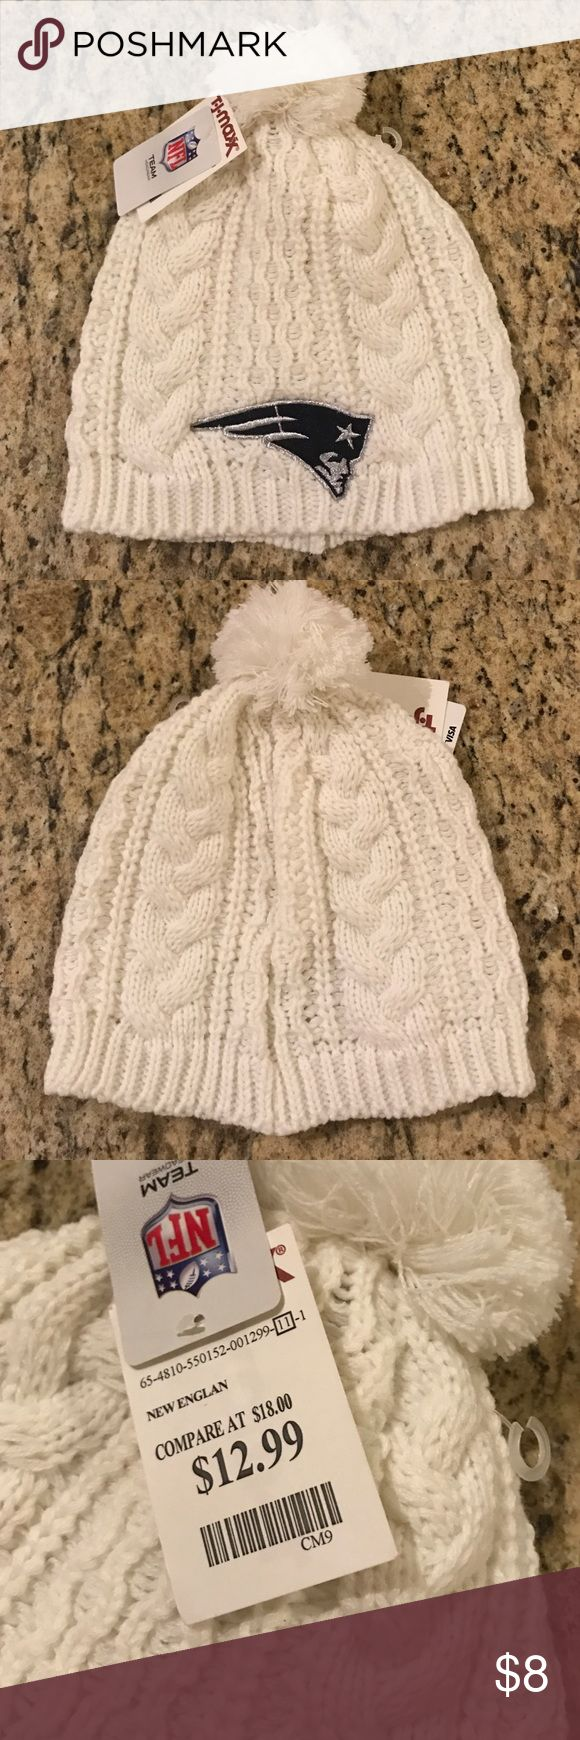 Patriots winter hat for women Women's cream patriots hat purchased from tj max. Never worn, new with tags. Accessories Hats